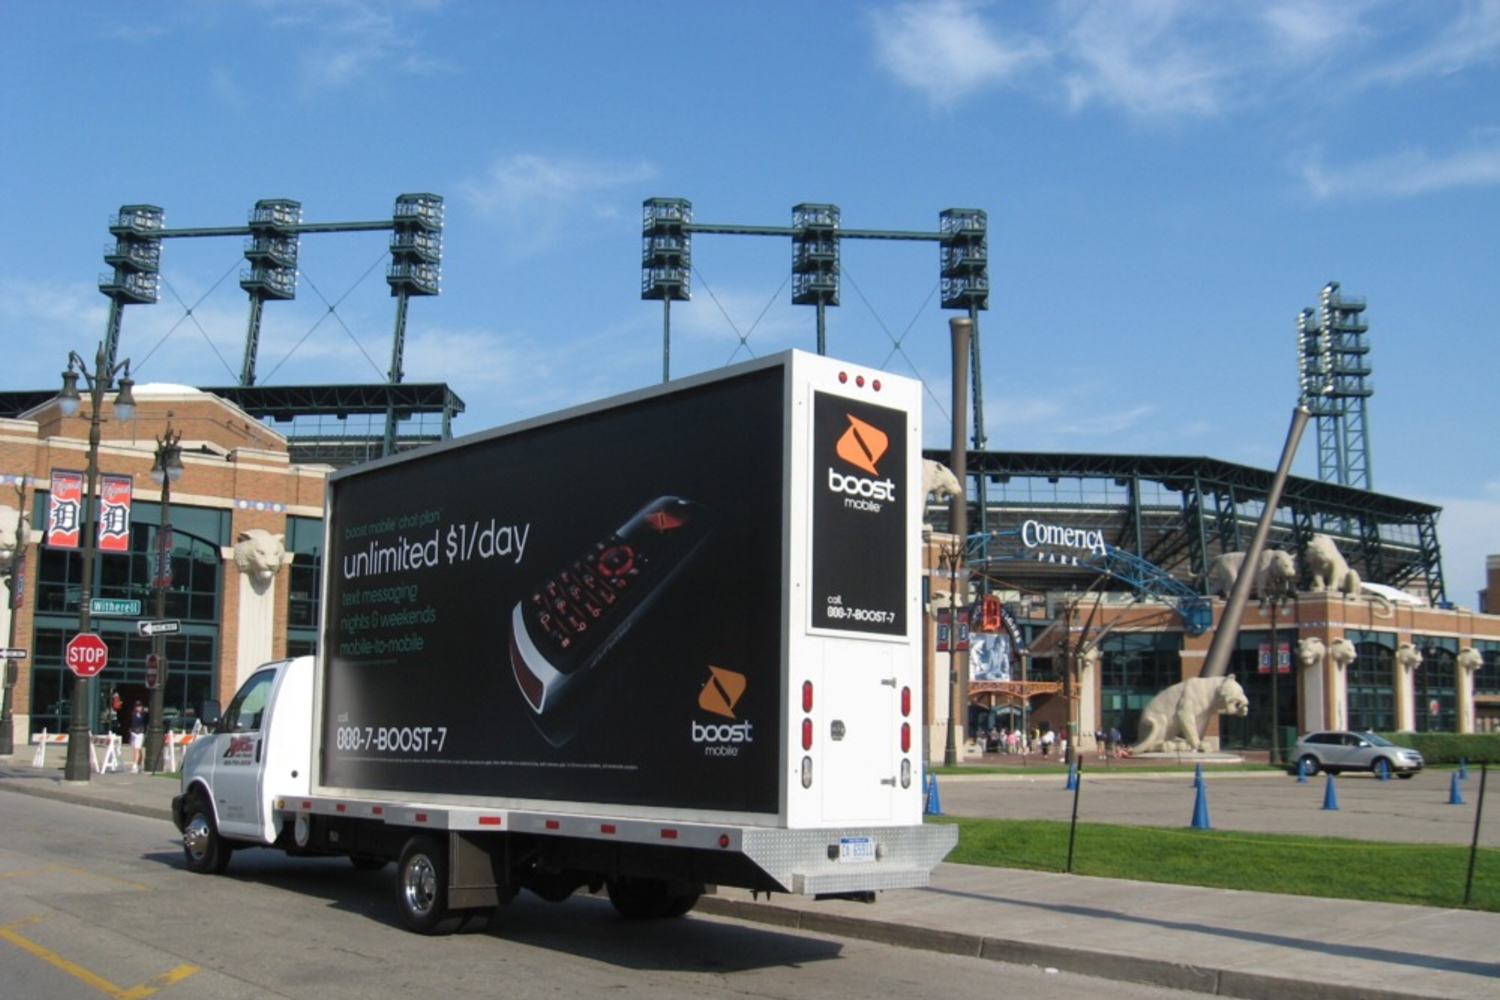 detroit mobile billboard advertising truck